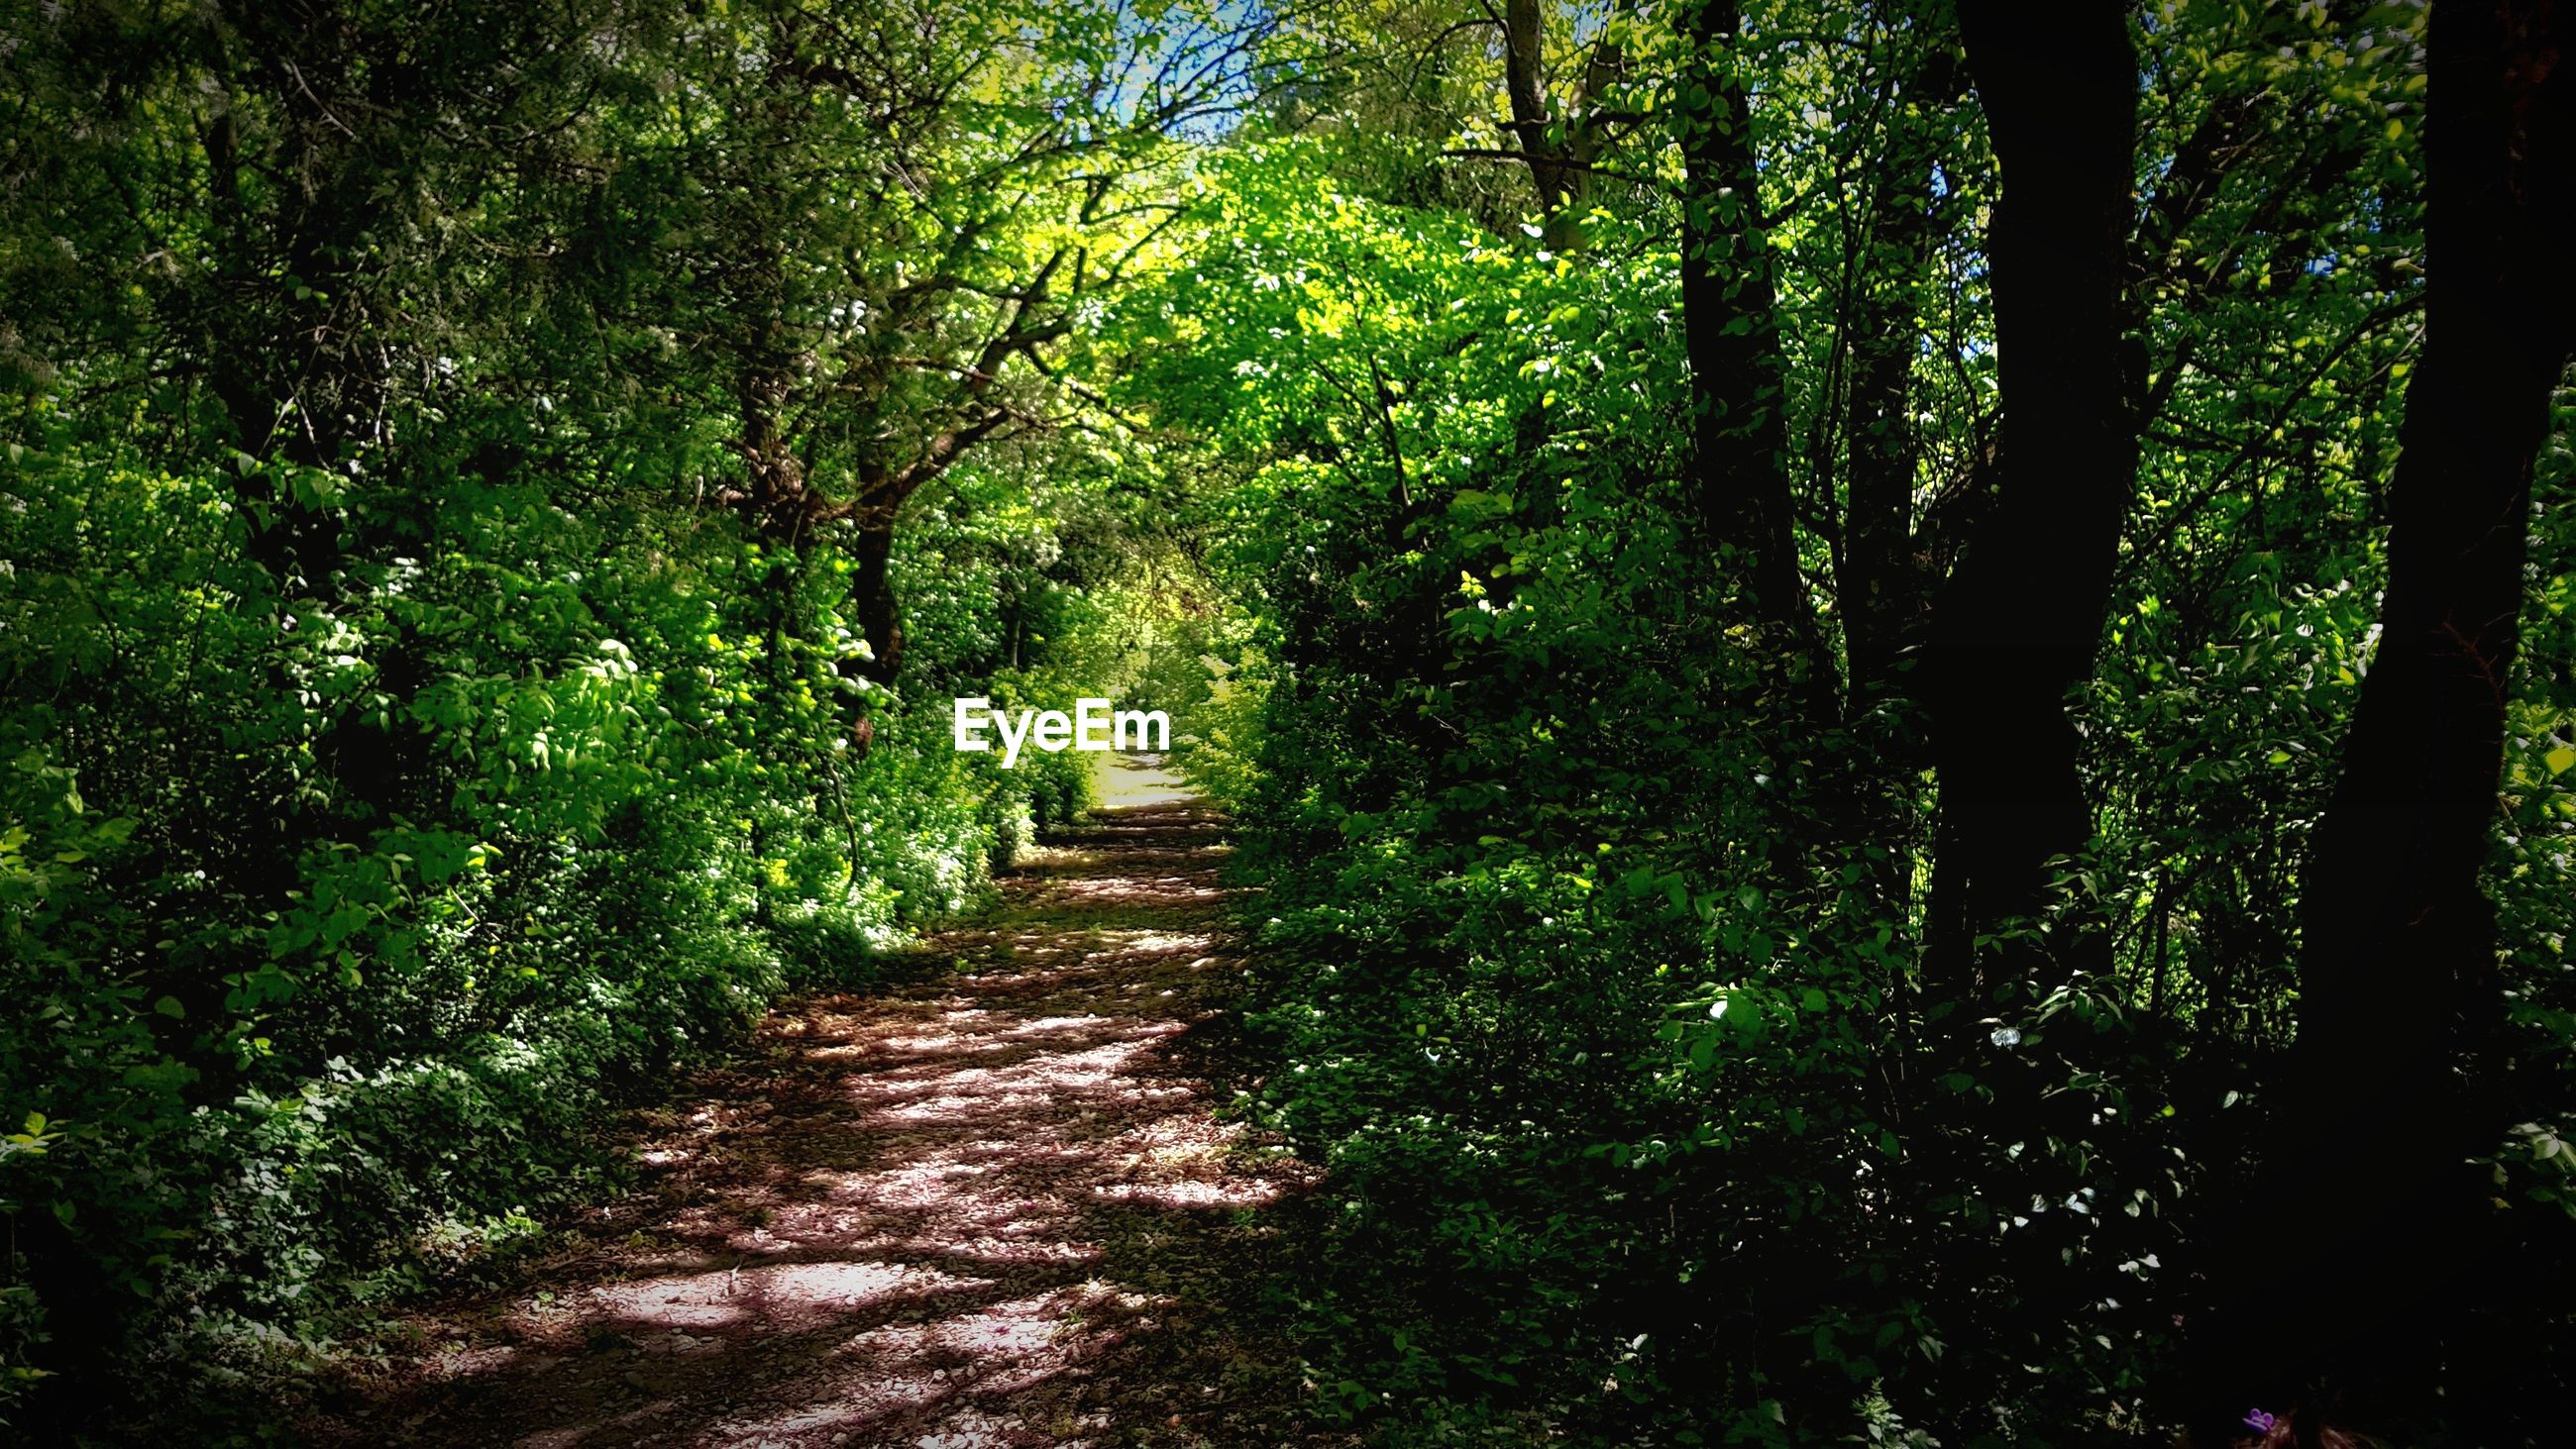 FOOTPATH ALONG TREES IN FOREST